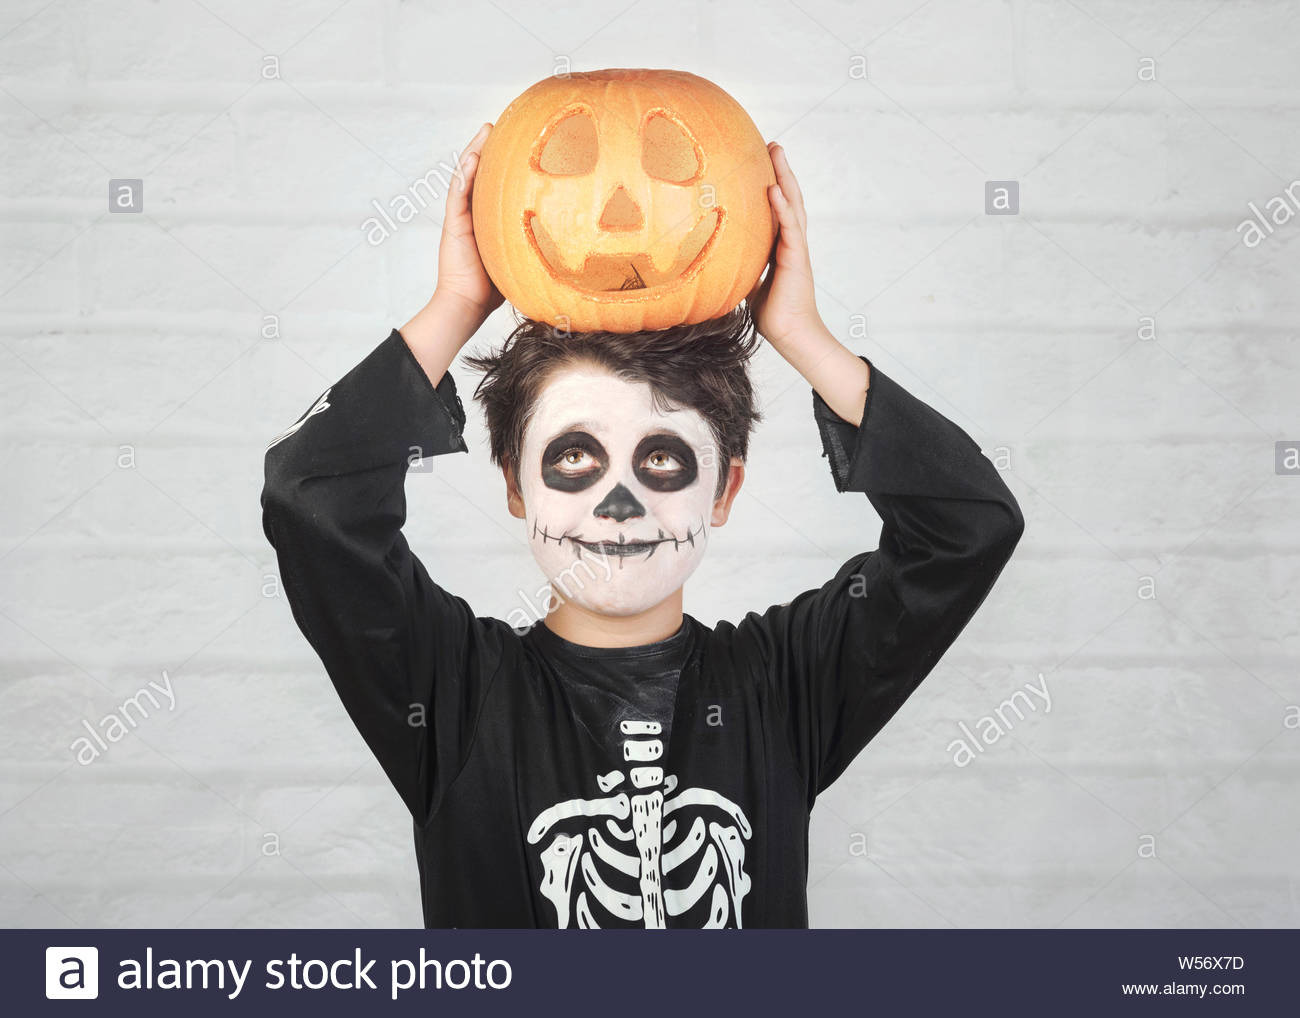 happy halloweenfunny child in a skeleton costume with halloween pumpkin over on his head against brick background W56X7D